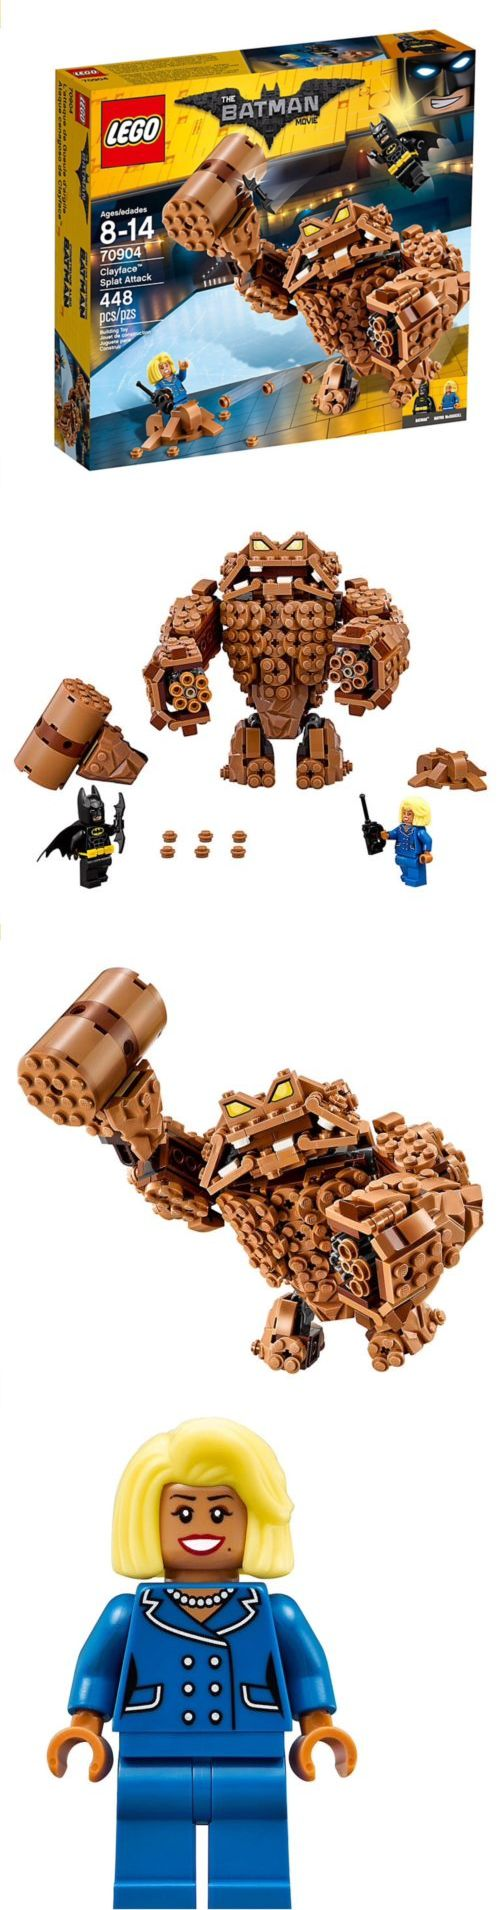 Minifigure Parts and Accessories 180023: Lego Batman Movie Clayface Splat Set 70904 New! -> BUY IT NOW ONLY: $44.99 on eBay!